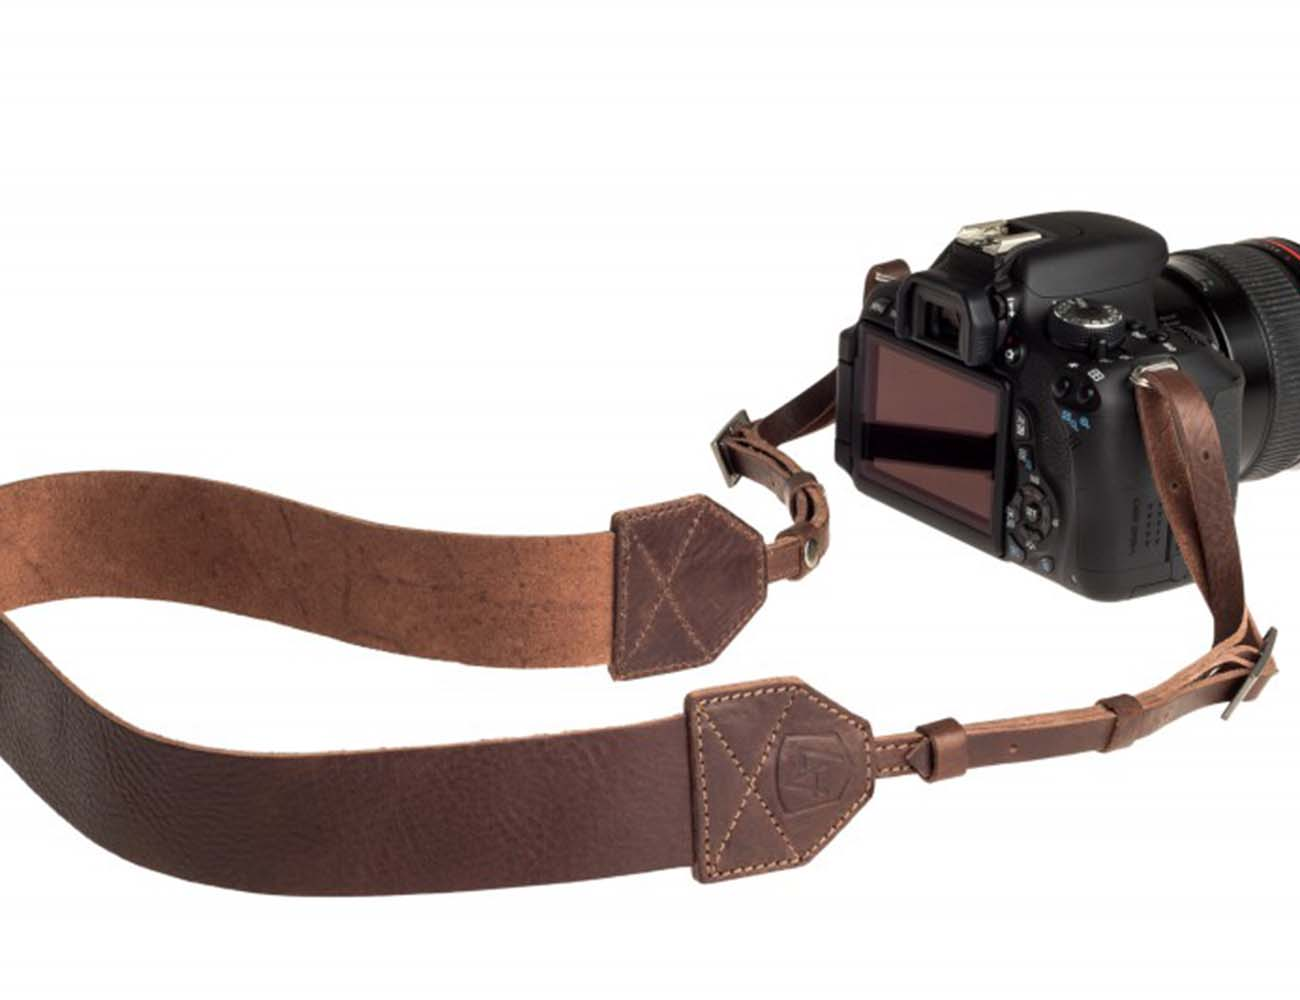 Morgan+Tan+Leather+Camera+Strap+By+A7